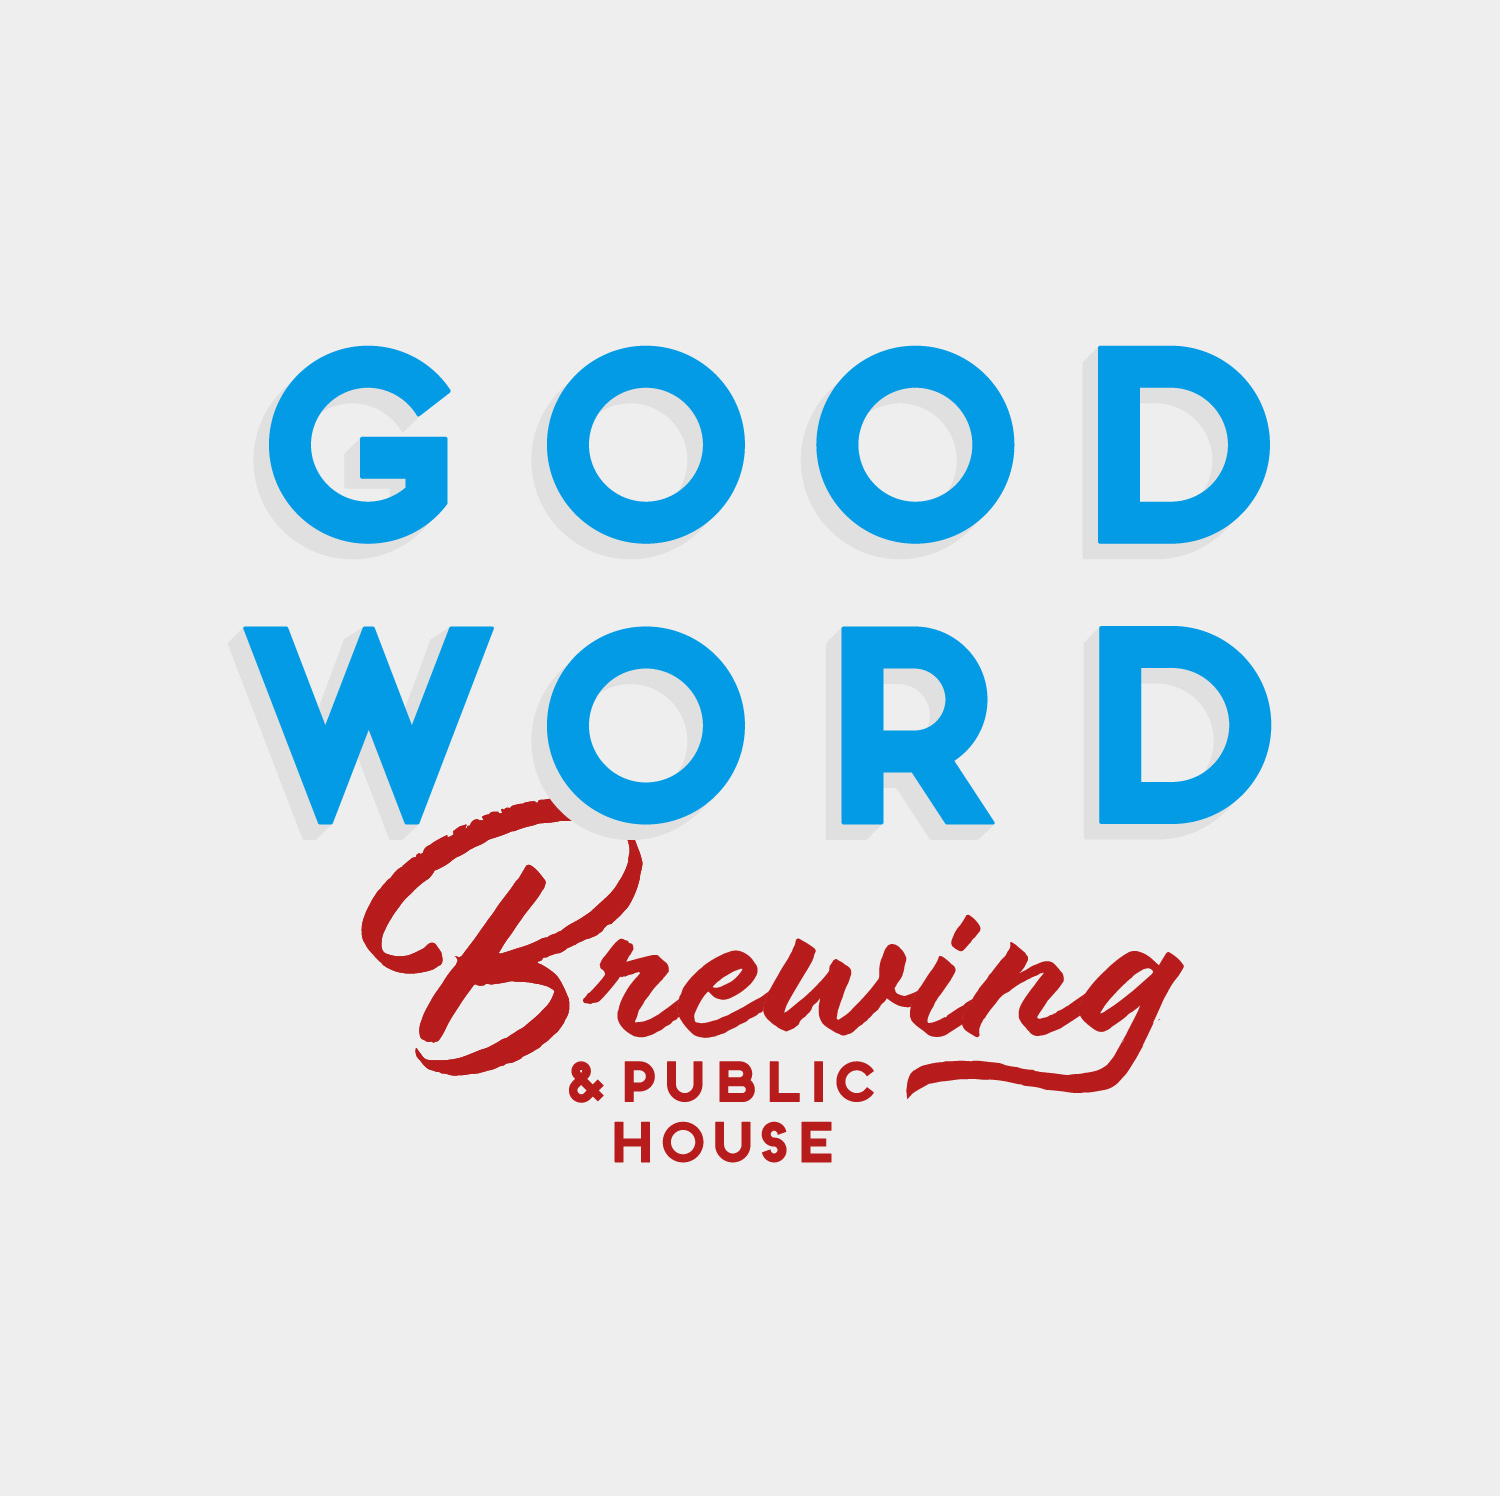 The Good Word Brewing